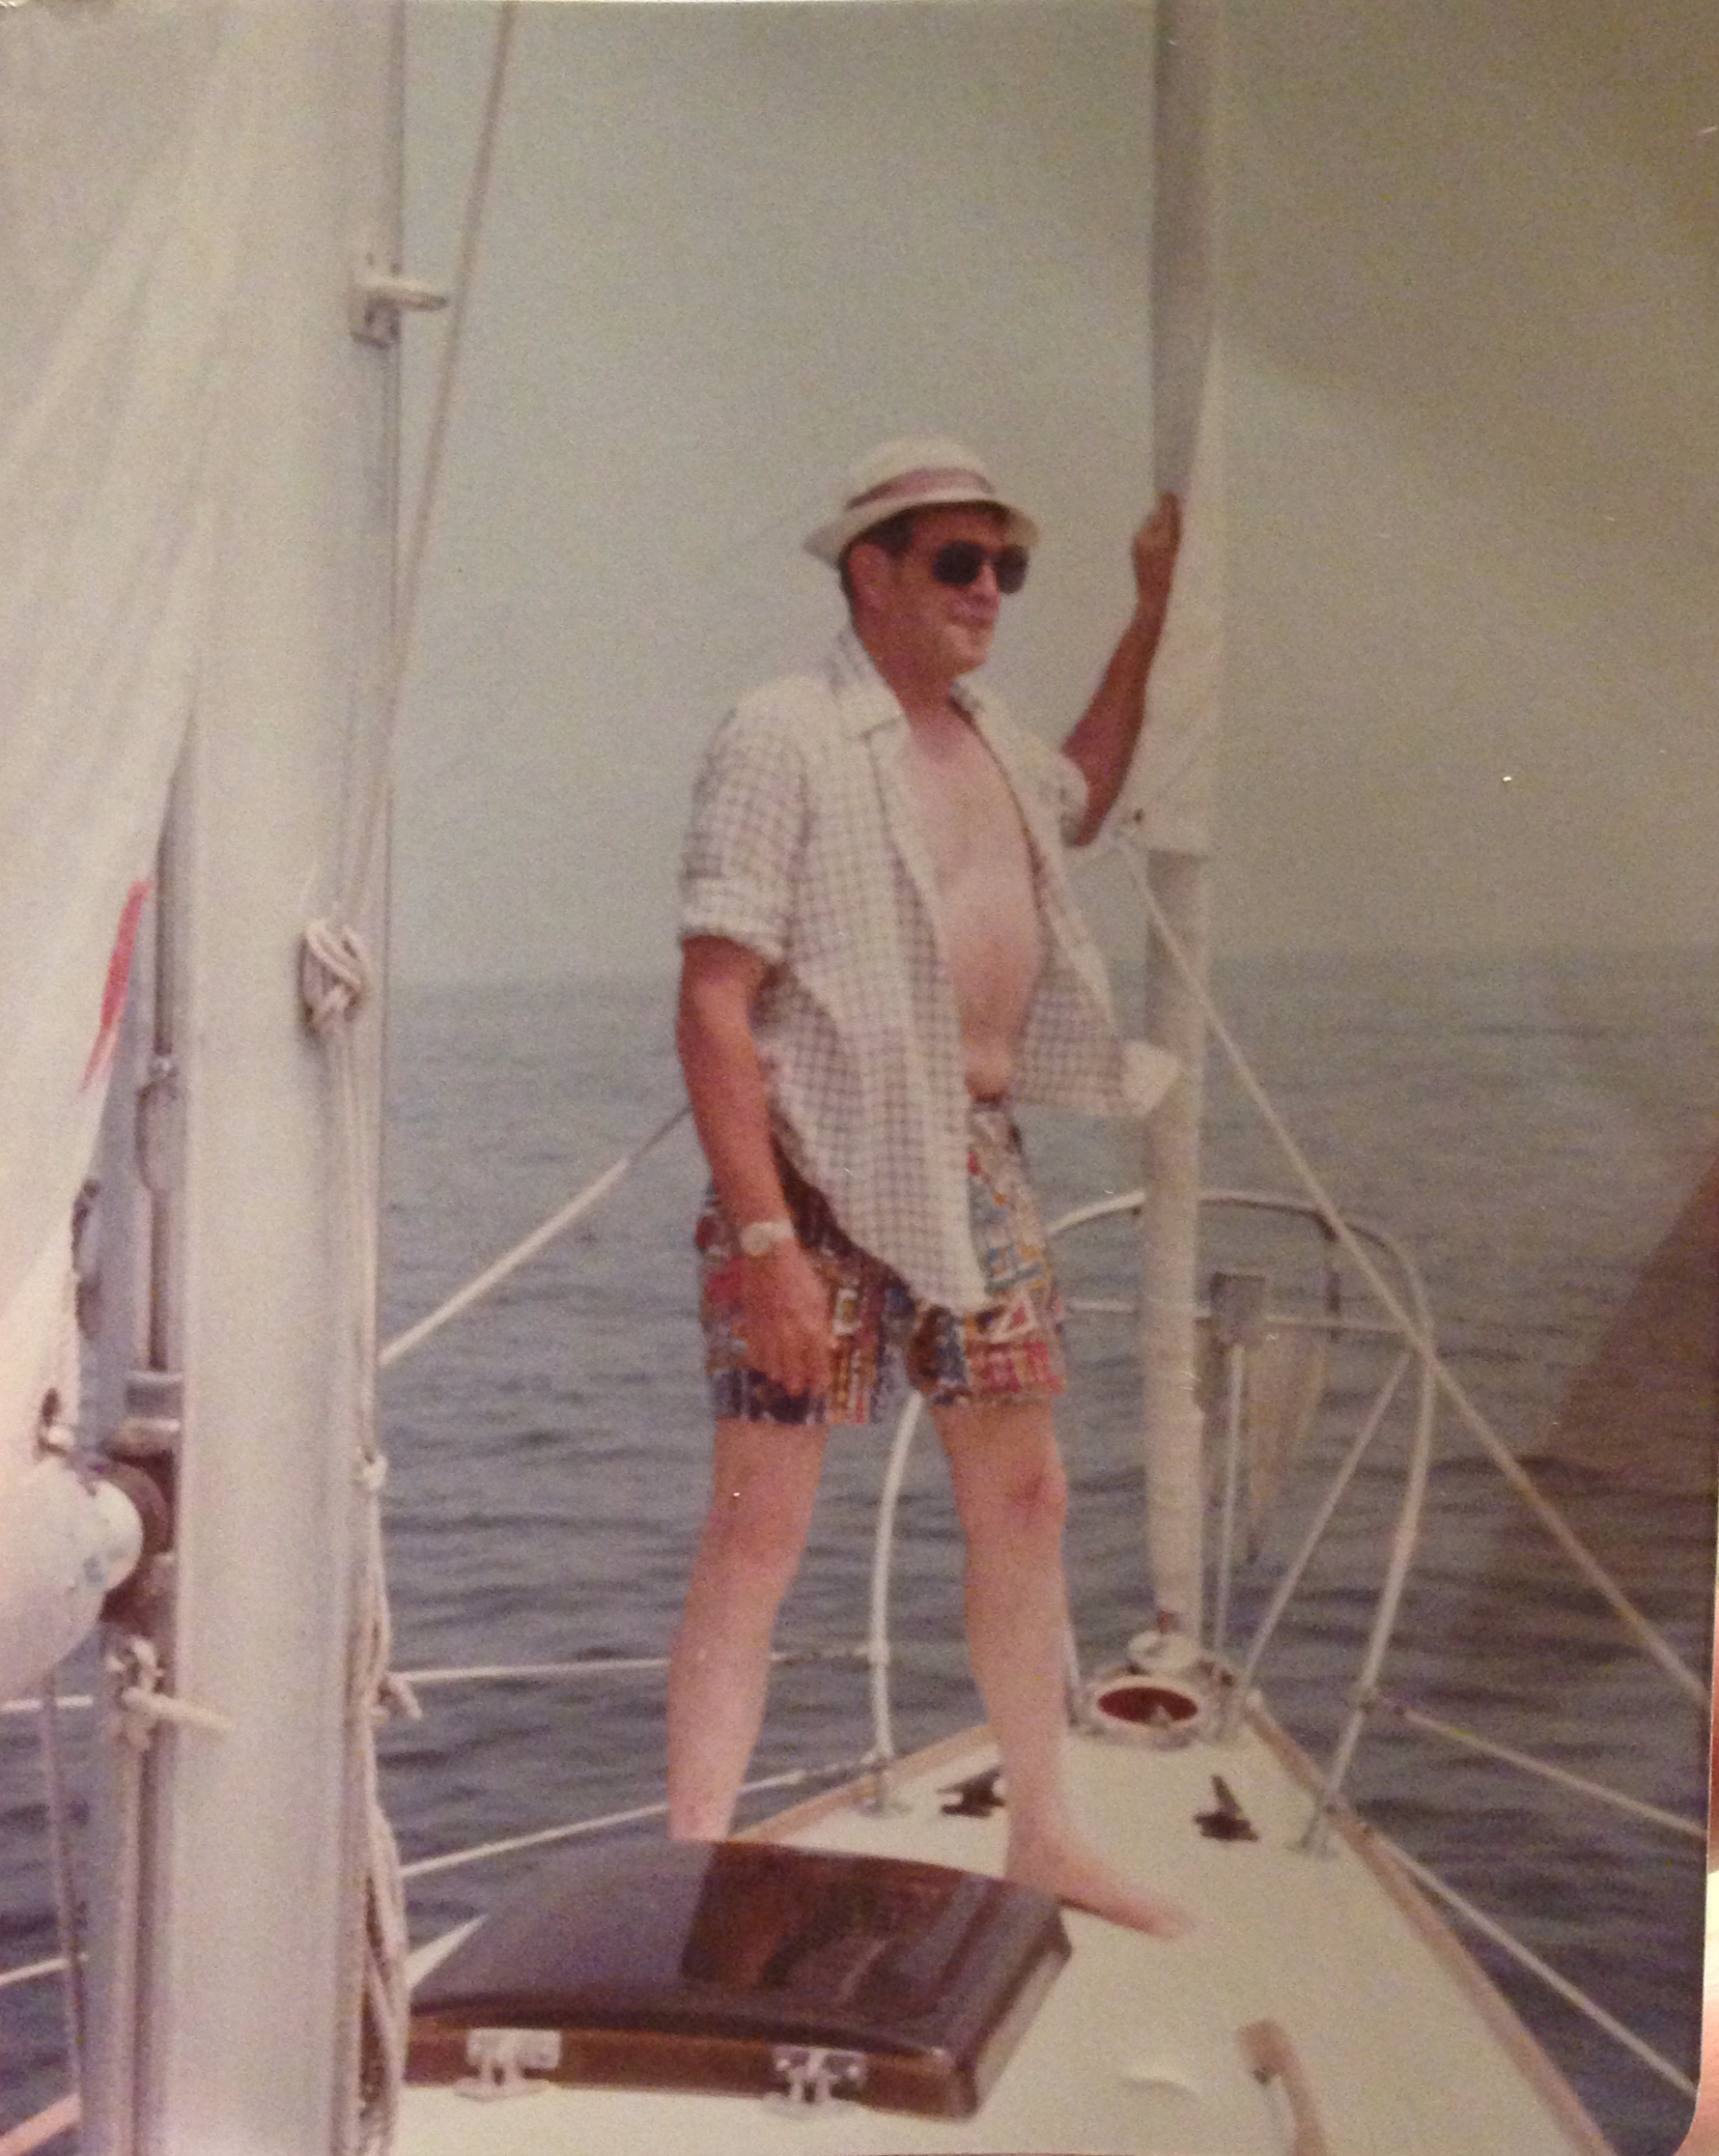 My grandfather, the boat lover